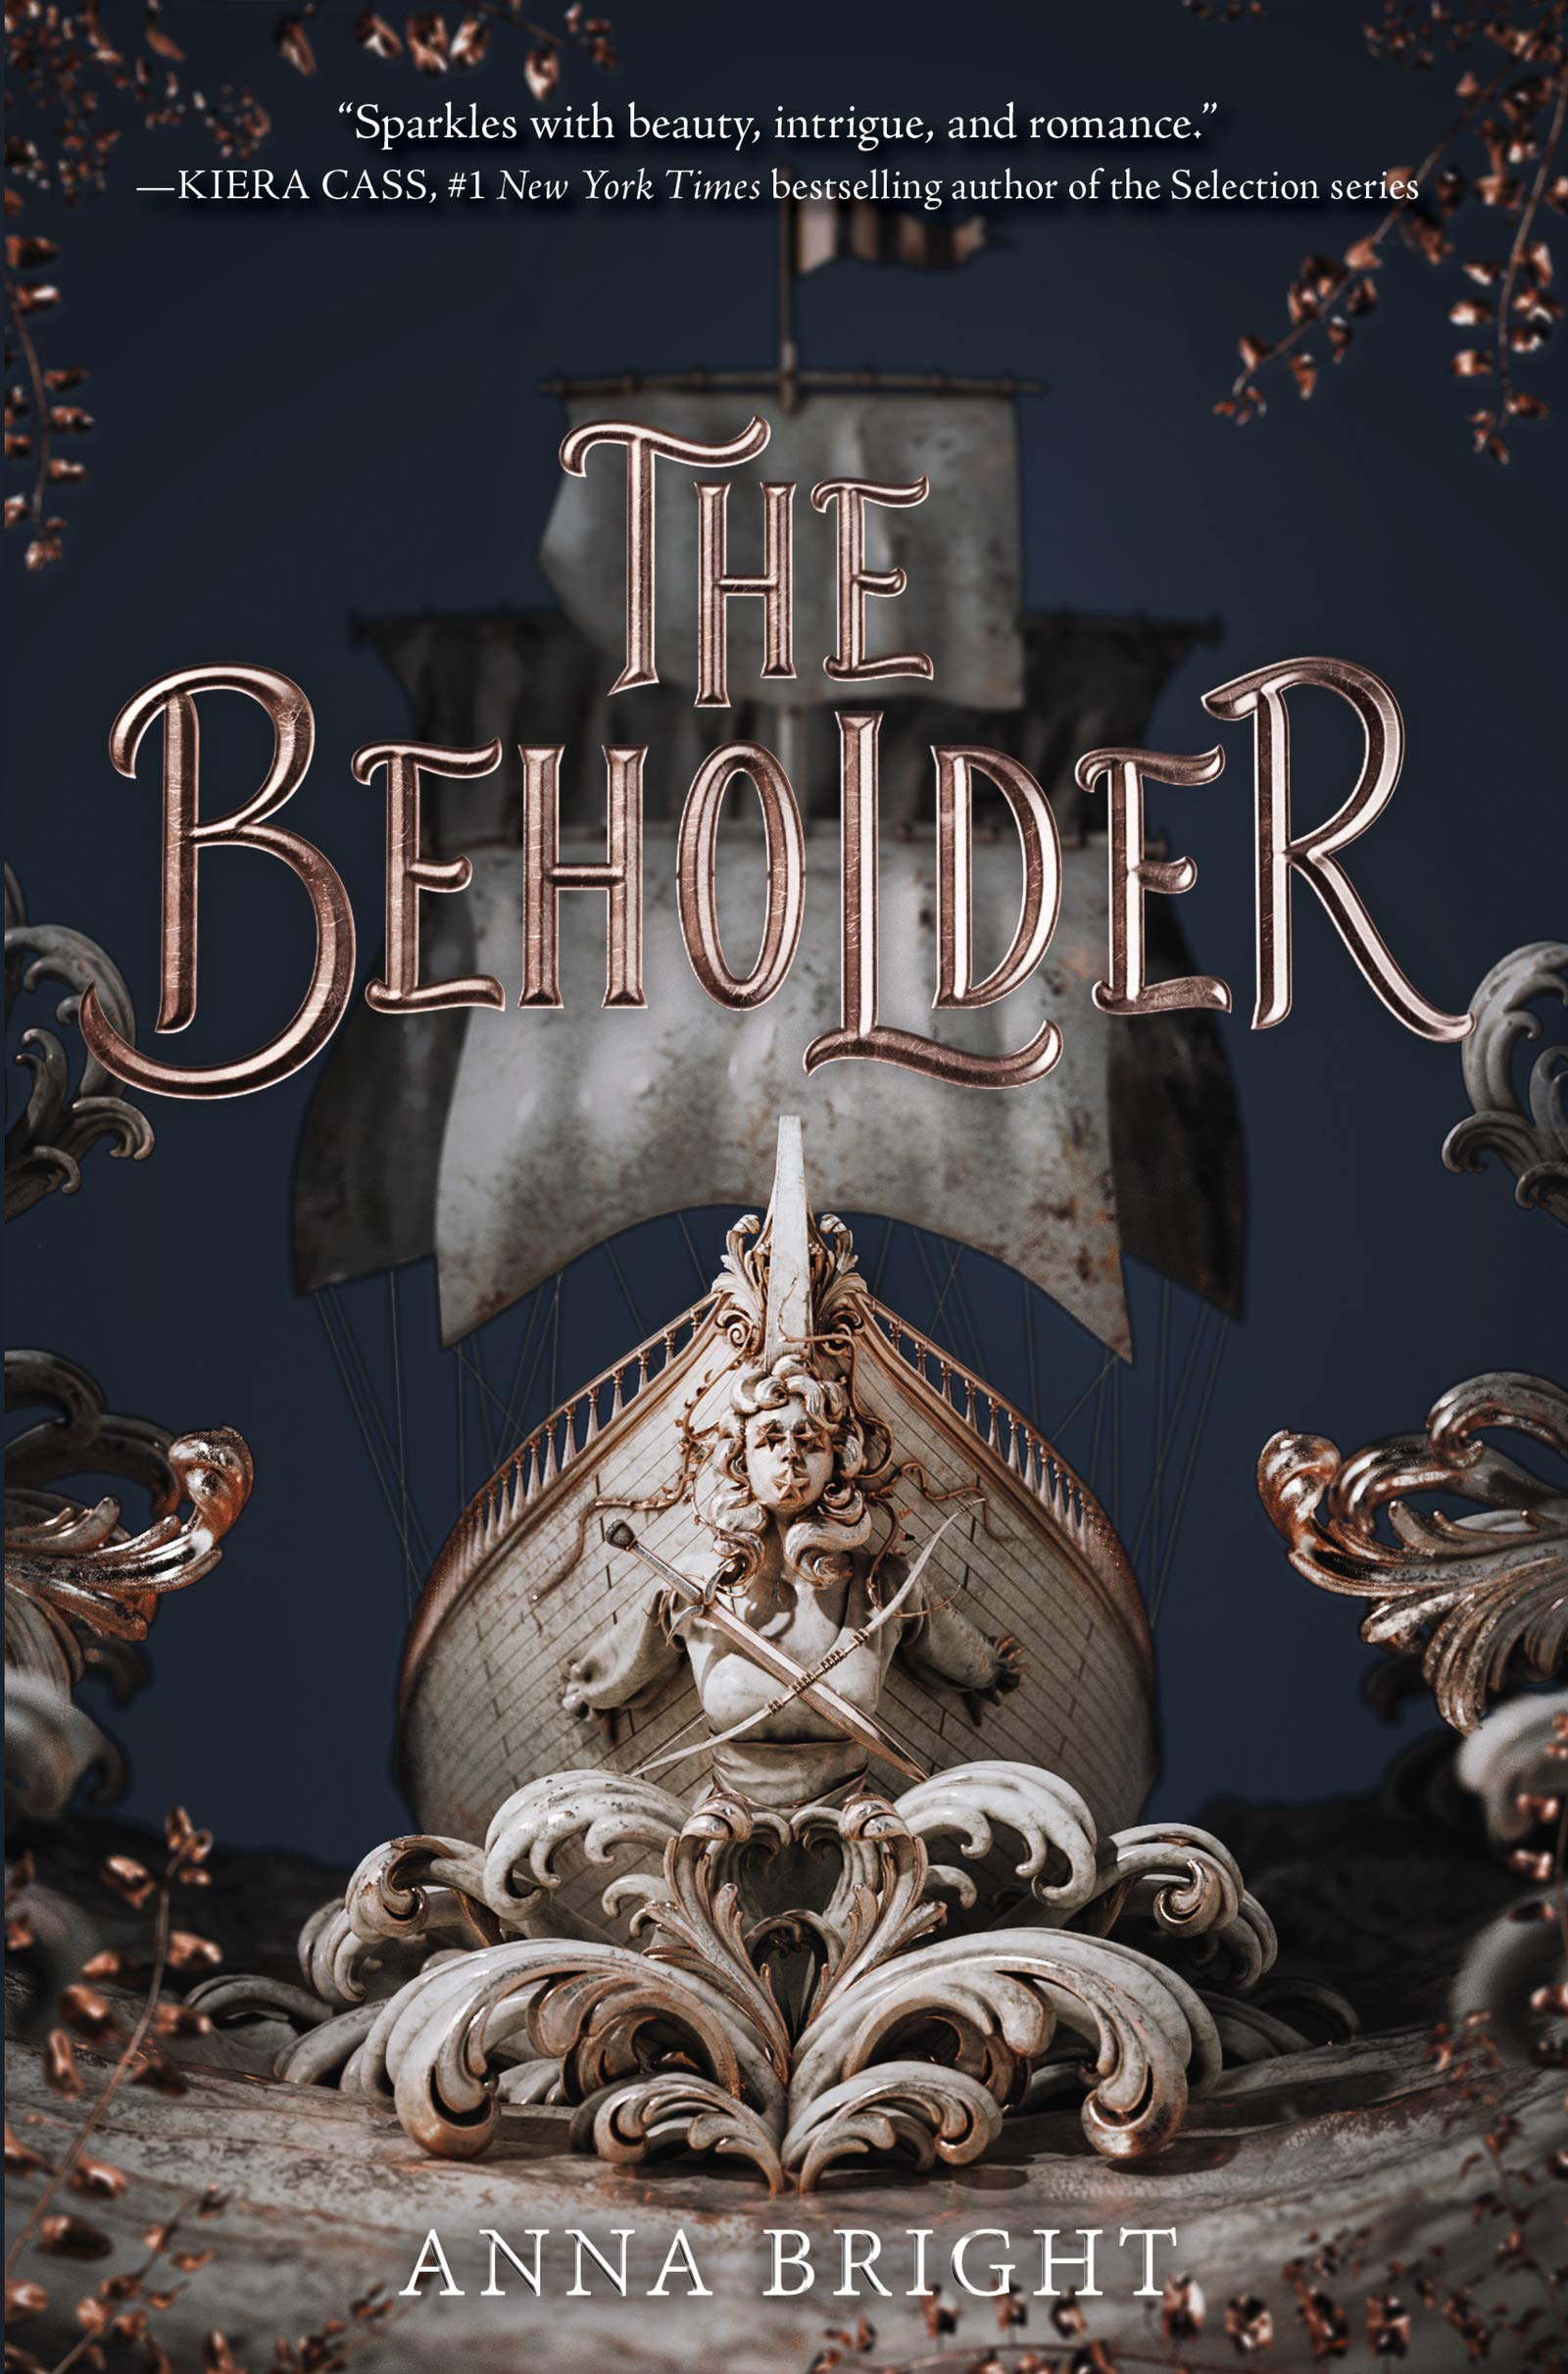 Amazon.com: The Beholder (9780062845429): Bright, Anna: Books